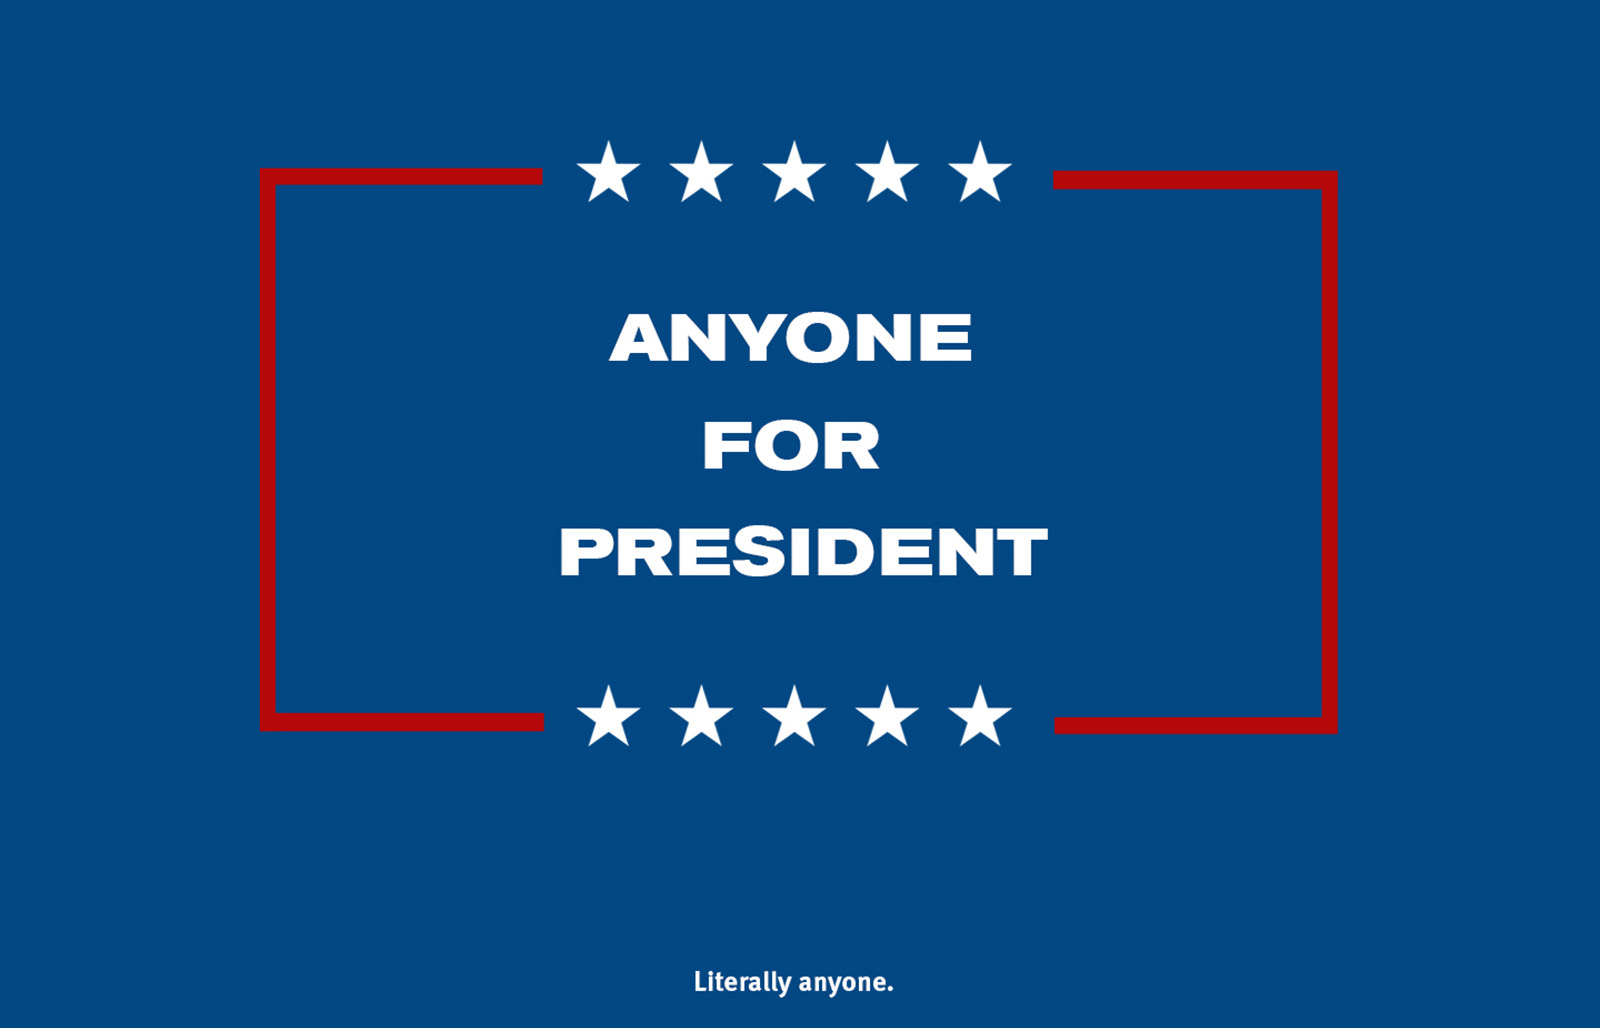 Filmmaker, Matt Nye, has a new award winning short film called 'Anyone for President', which will amuse everyone no matter their political affiliation.